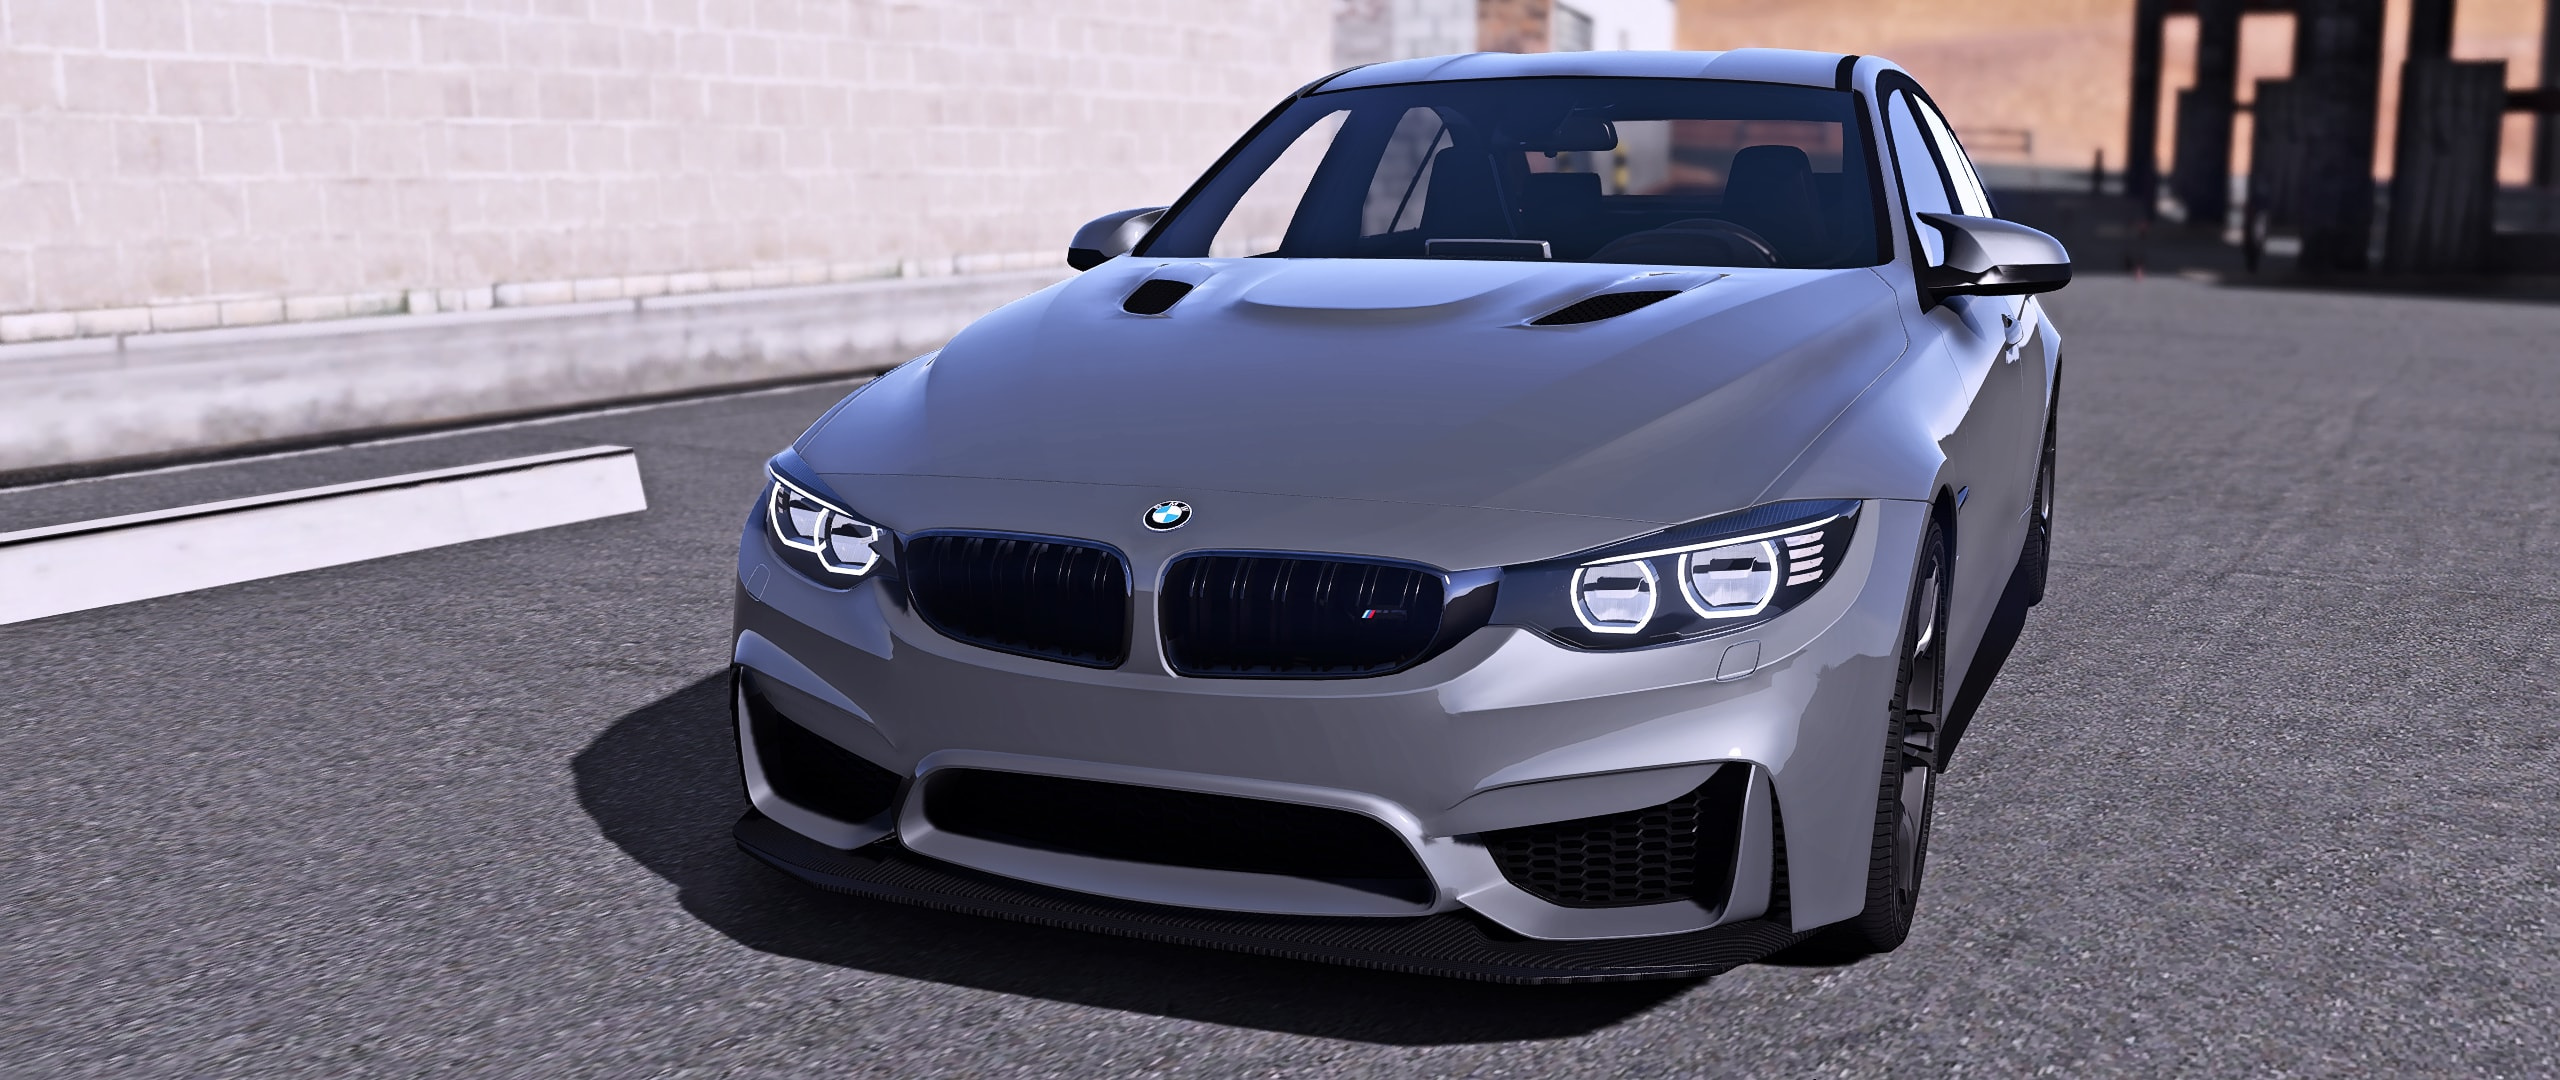 2015 bmw m3 f80 add on tuning analog digital dials. Black Bedroom Furniture Sets. Home Design Ideas